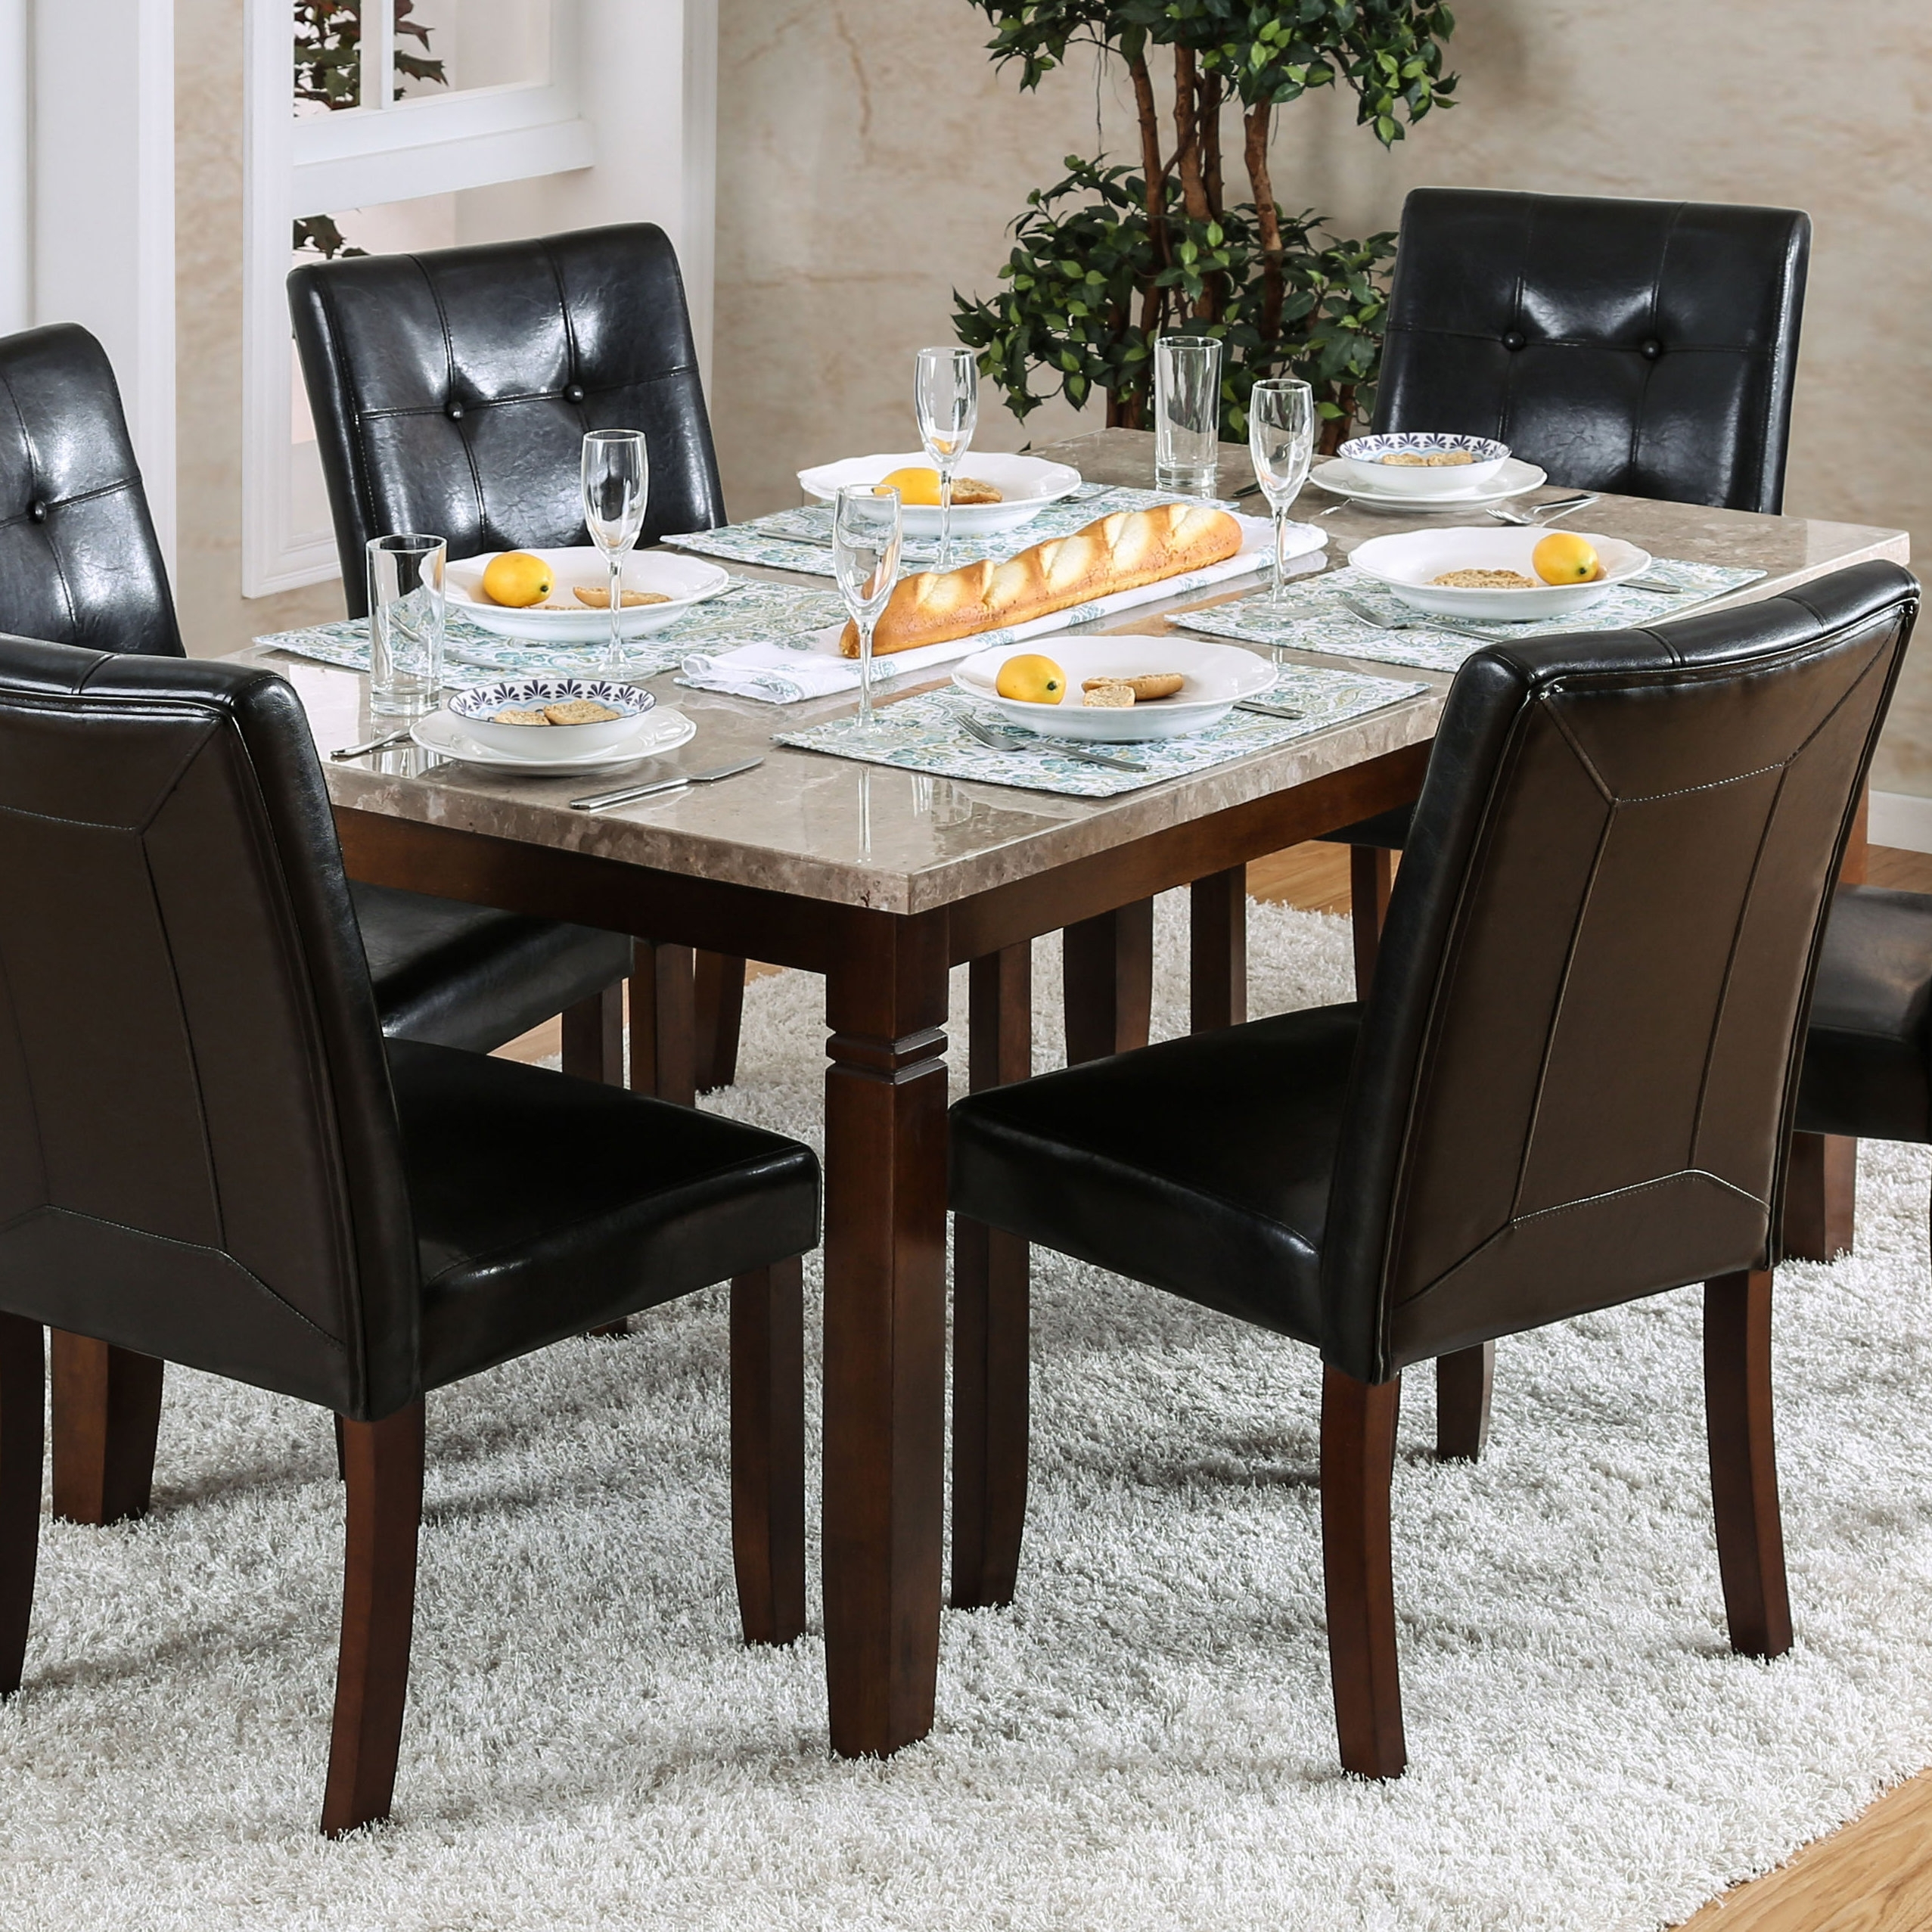 Red Barrel Studio Gibbons 7 Piece Dining Set | Wayfair Inside Most Current Candice Ii 6 Piece Extension Rectangle Dining Sets (View 19 of 20)